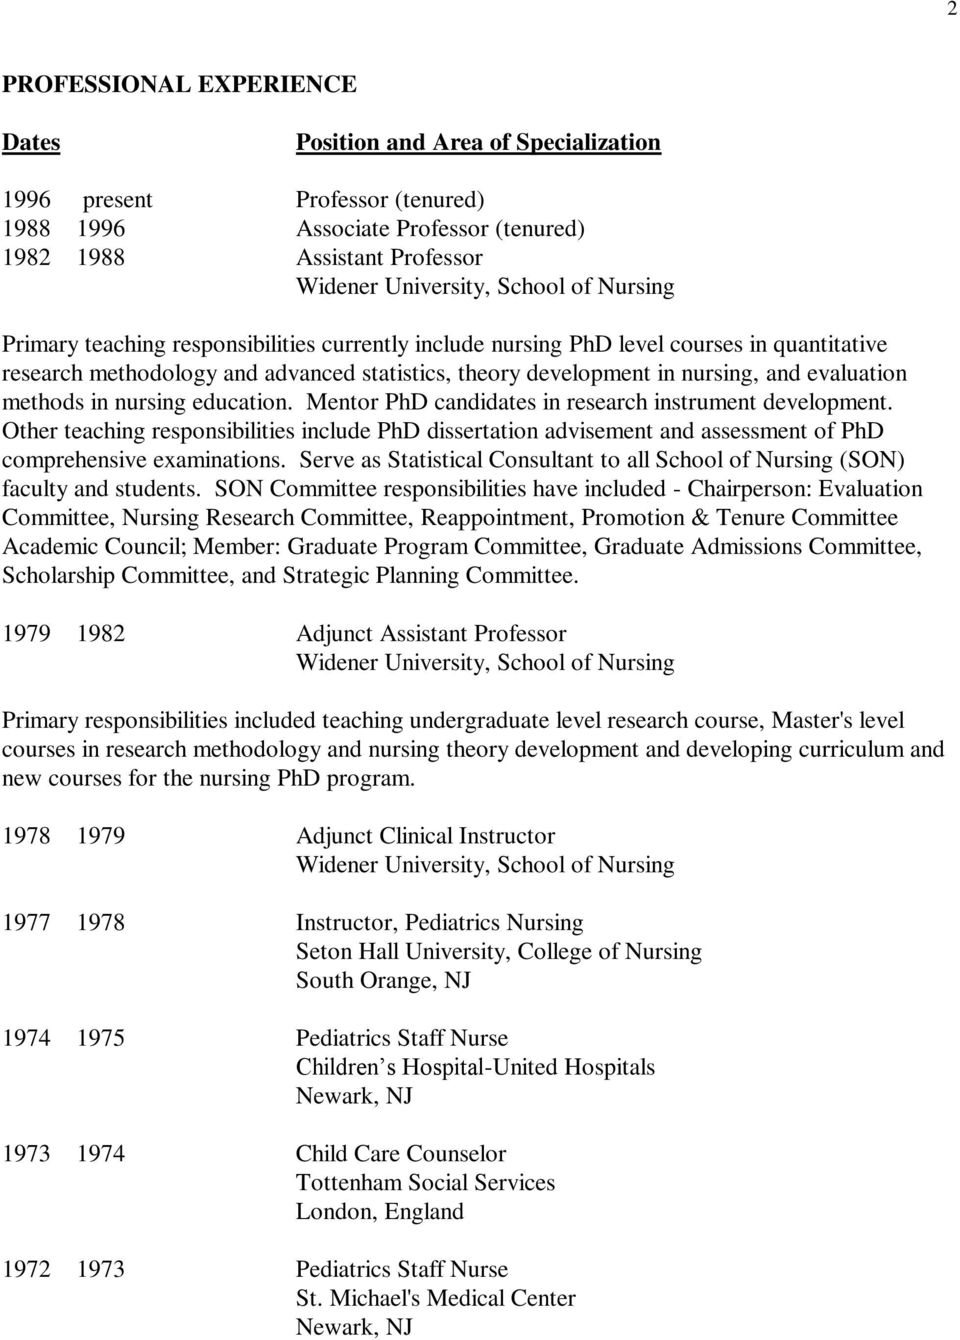 methods in nursing education Mentor PhD candidates in research instrument development Other teaching responsibilities include PhD dissertation advisement and assessment of PhD comprehensive